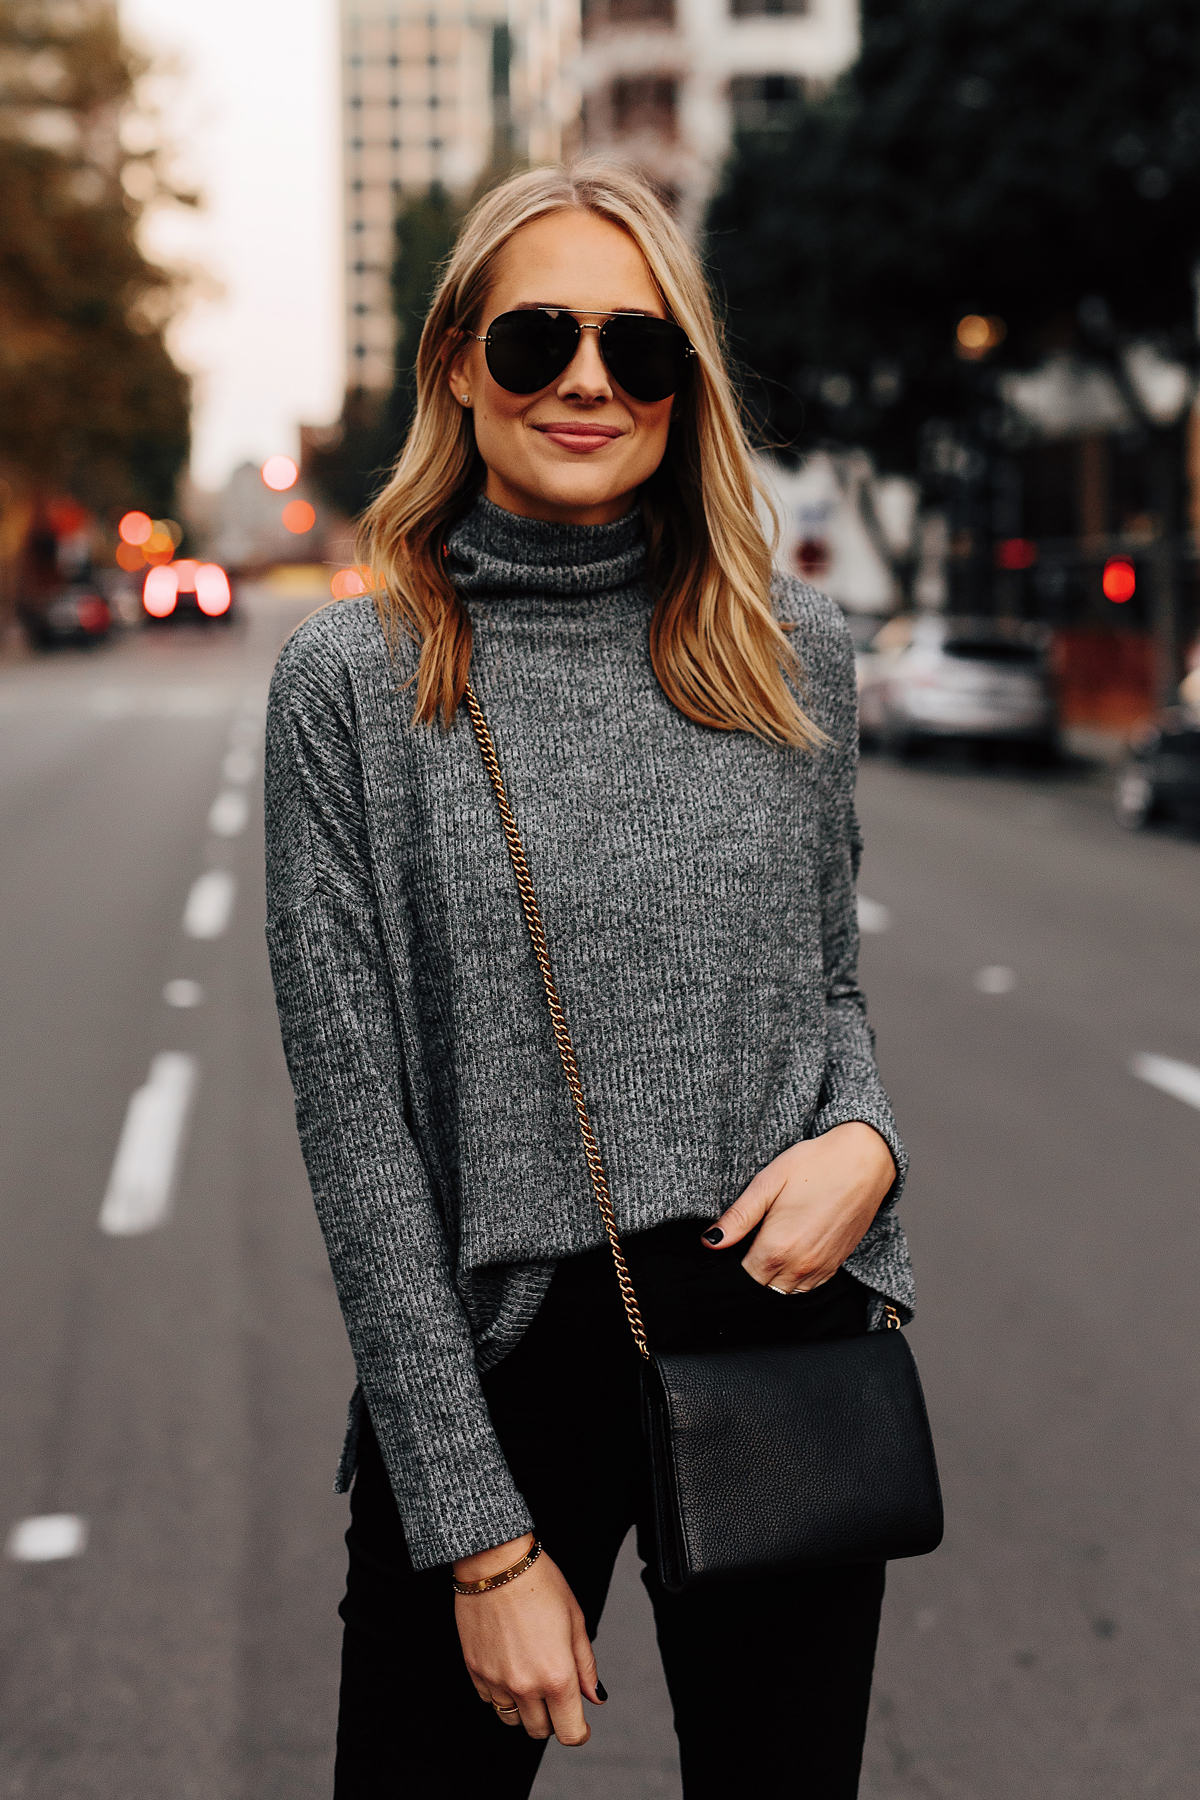 Blonde Woman Wearing Heather Grey Turtleneck Black Skinny Jeans Outfit Aviator Sunglasses Fashion Jackson San Diego Fashion Blogger Street Style